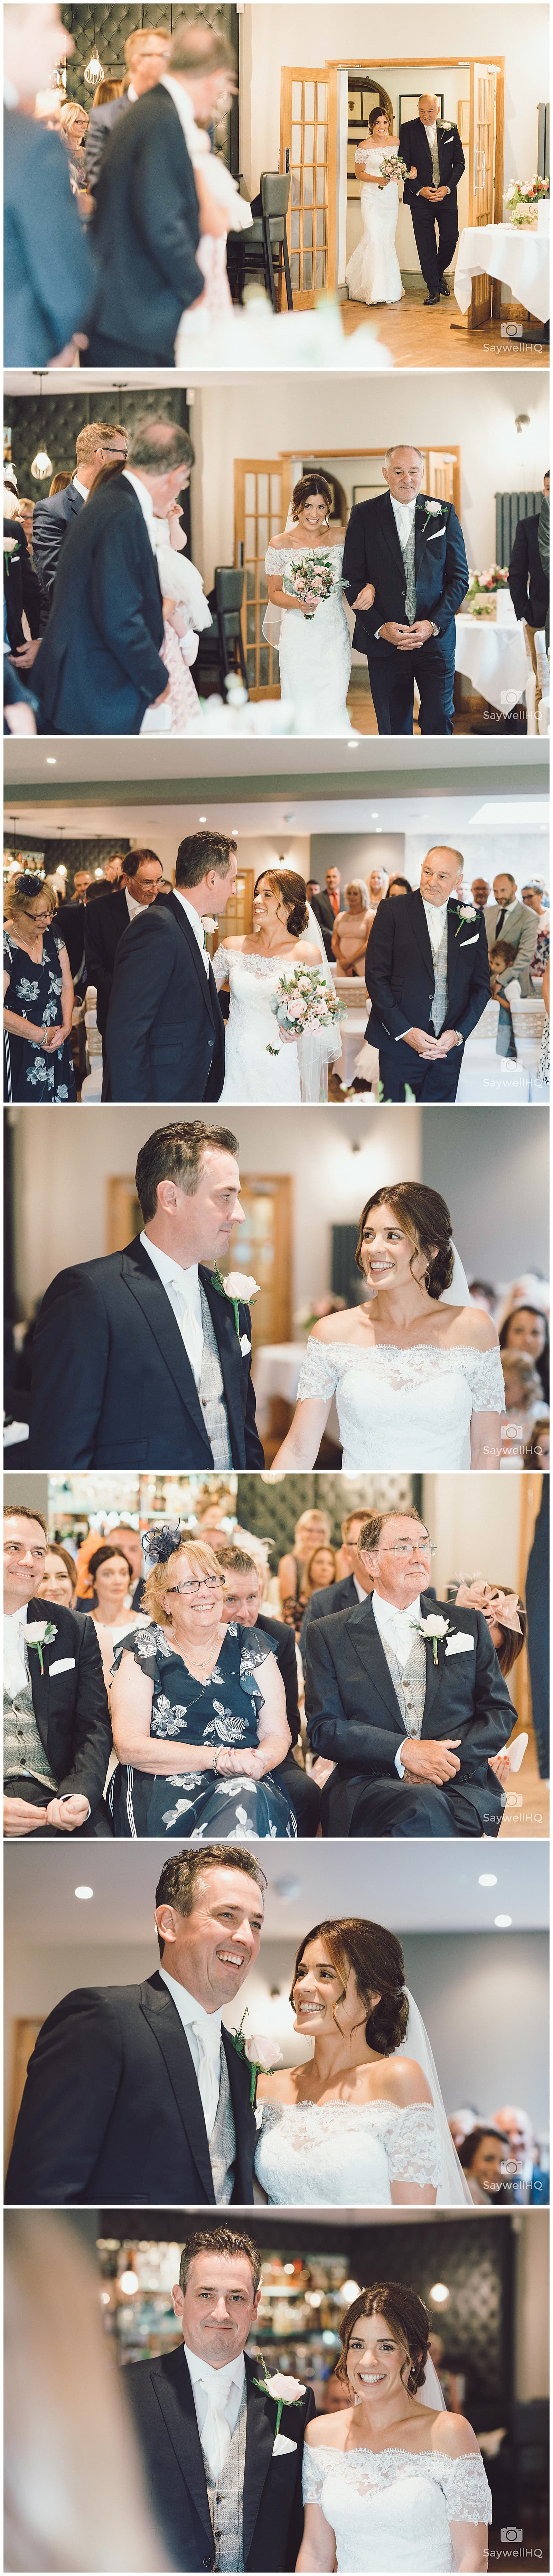 The Chequers Inn Woolsthorpe Wedding Photography - bride and groom exchange rings during the wedding ceremony